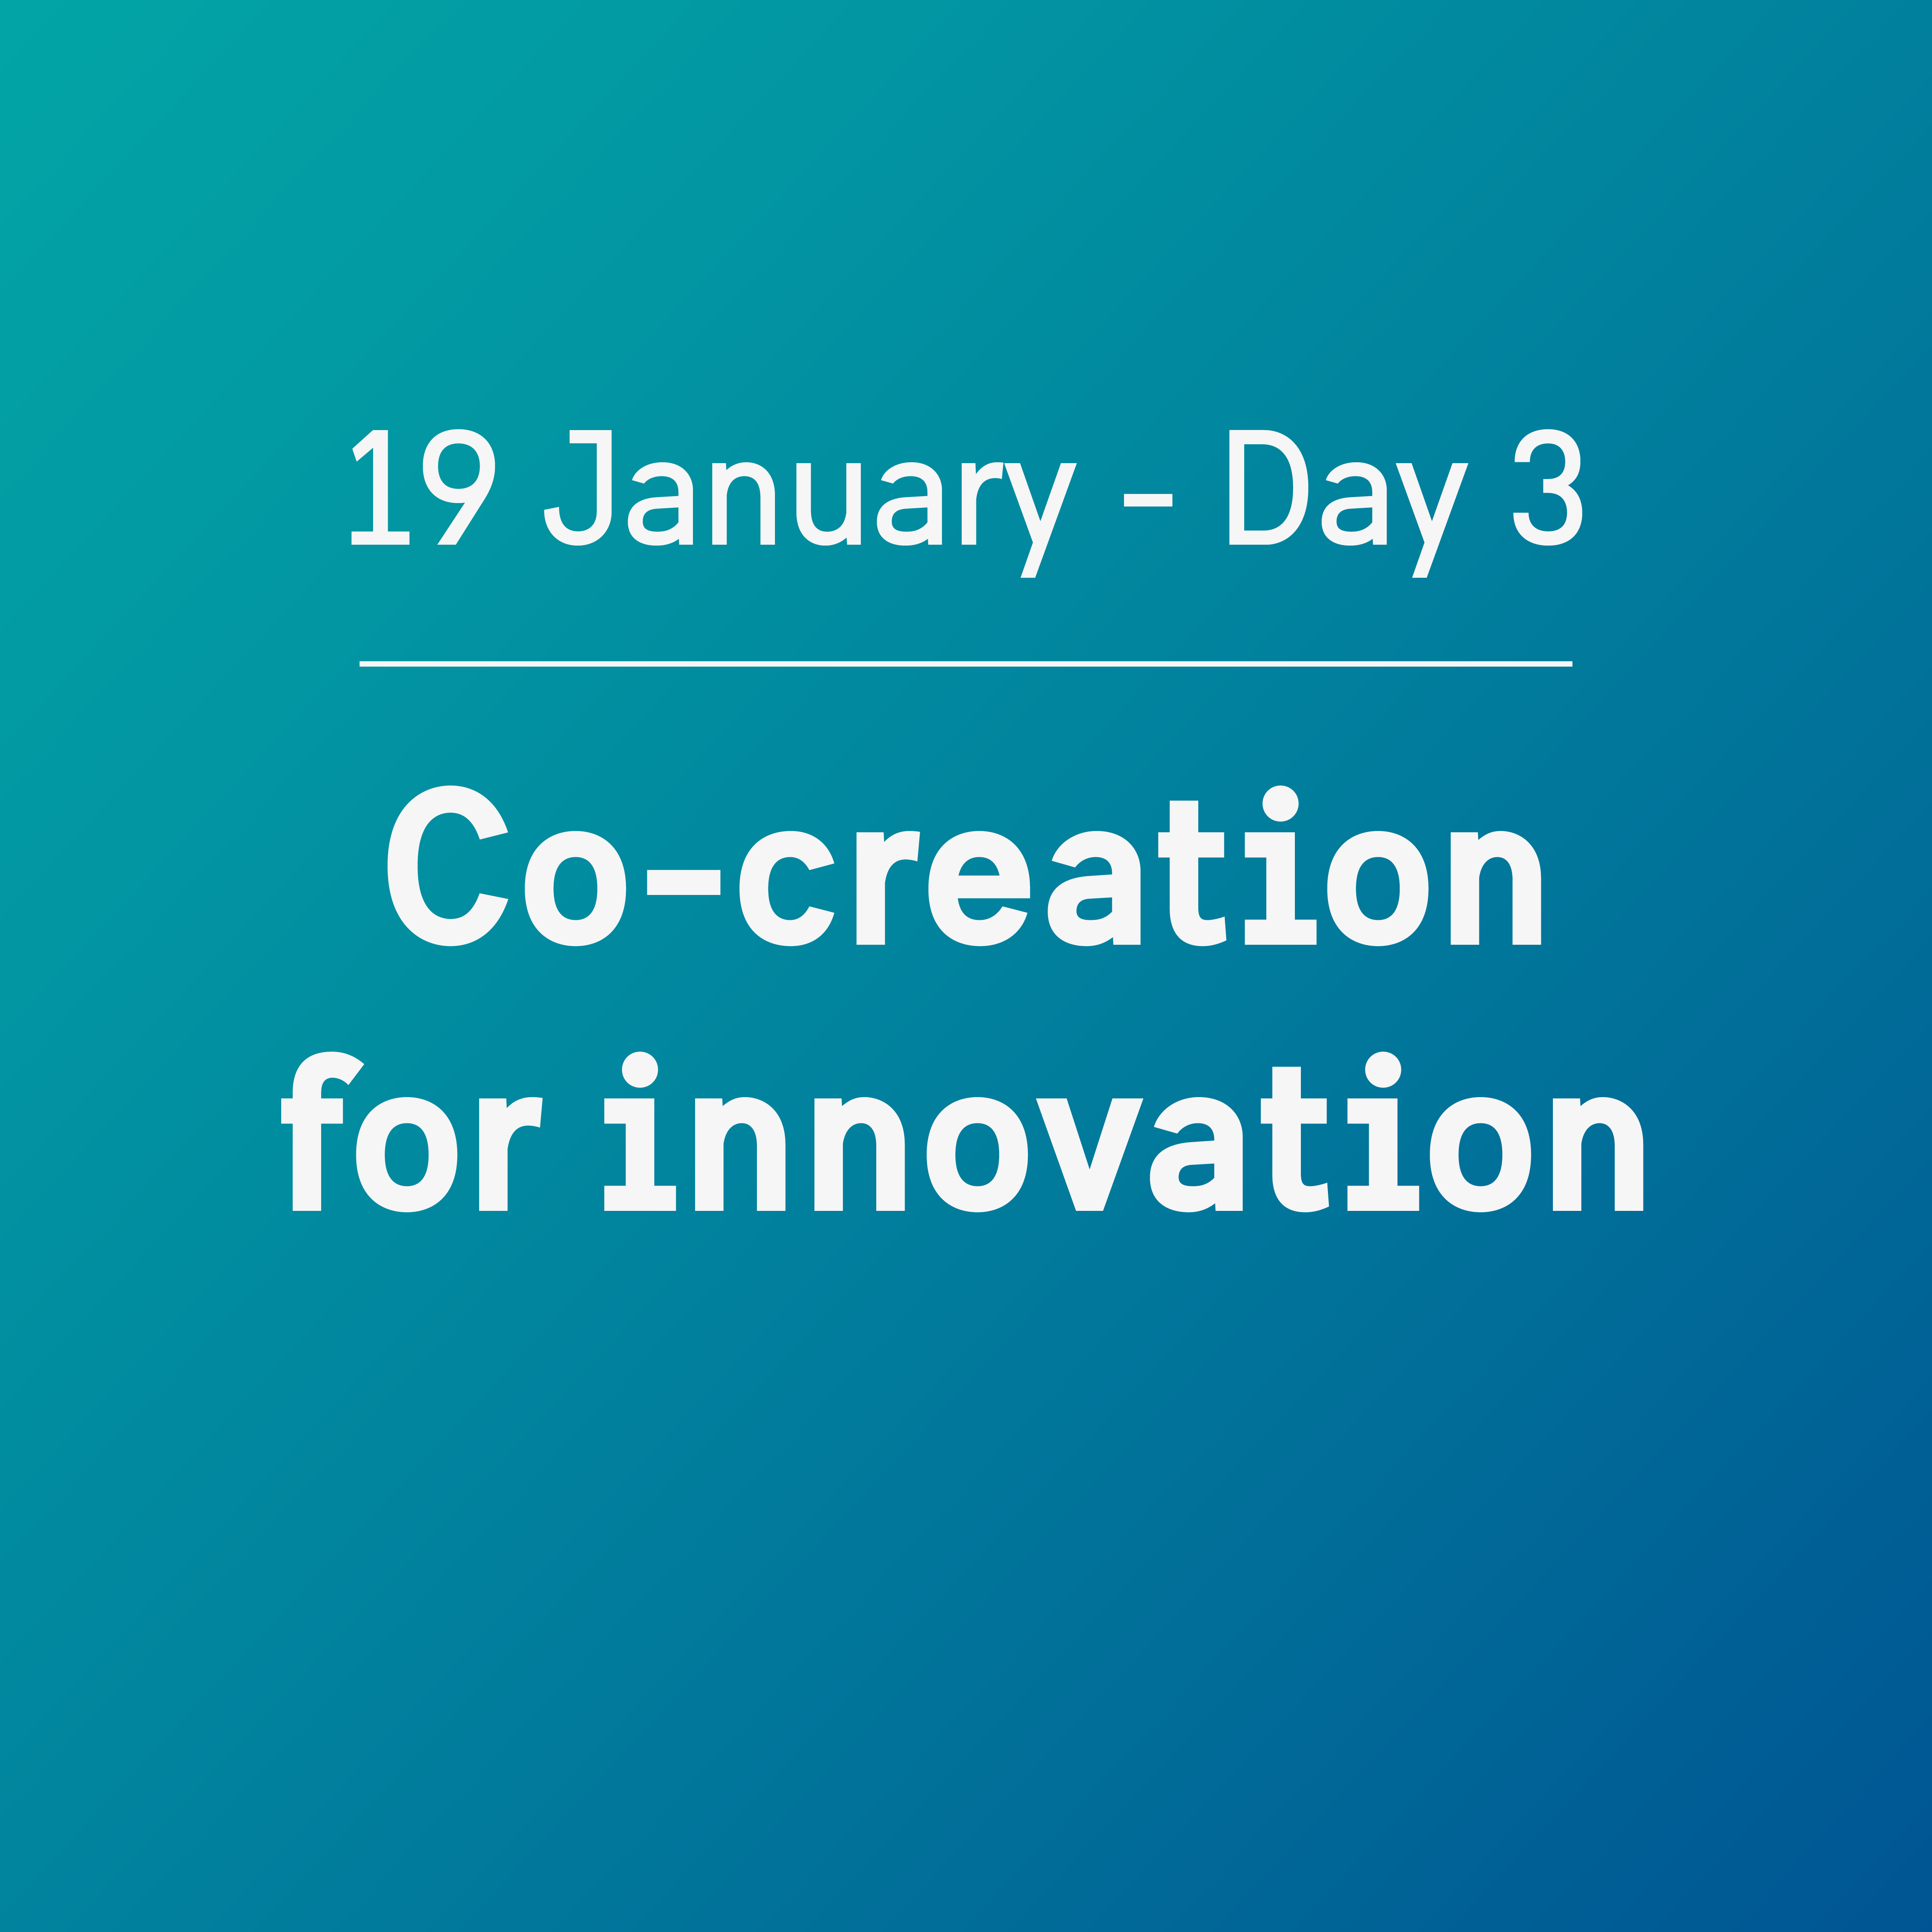 Agenda Day 3: Co-creation for innovation